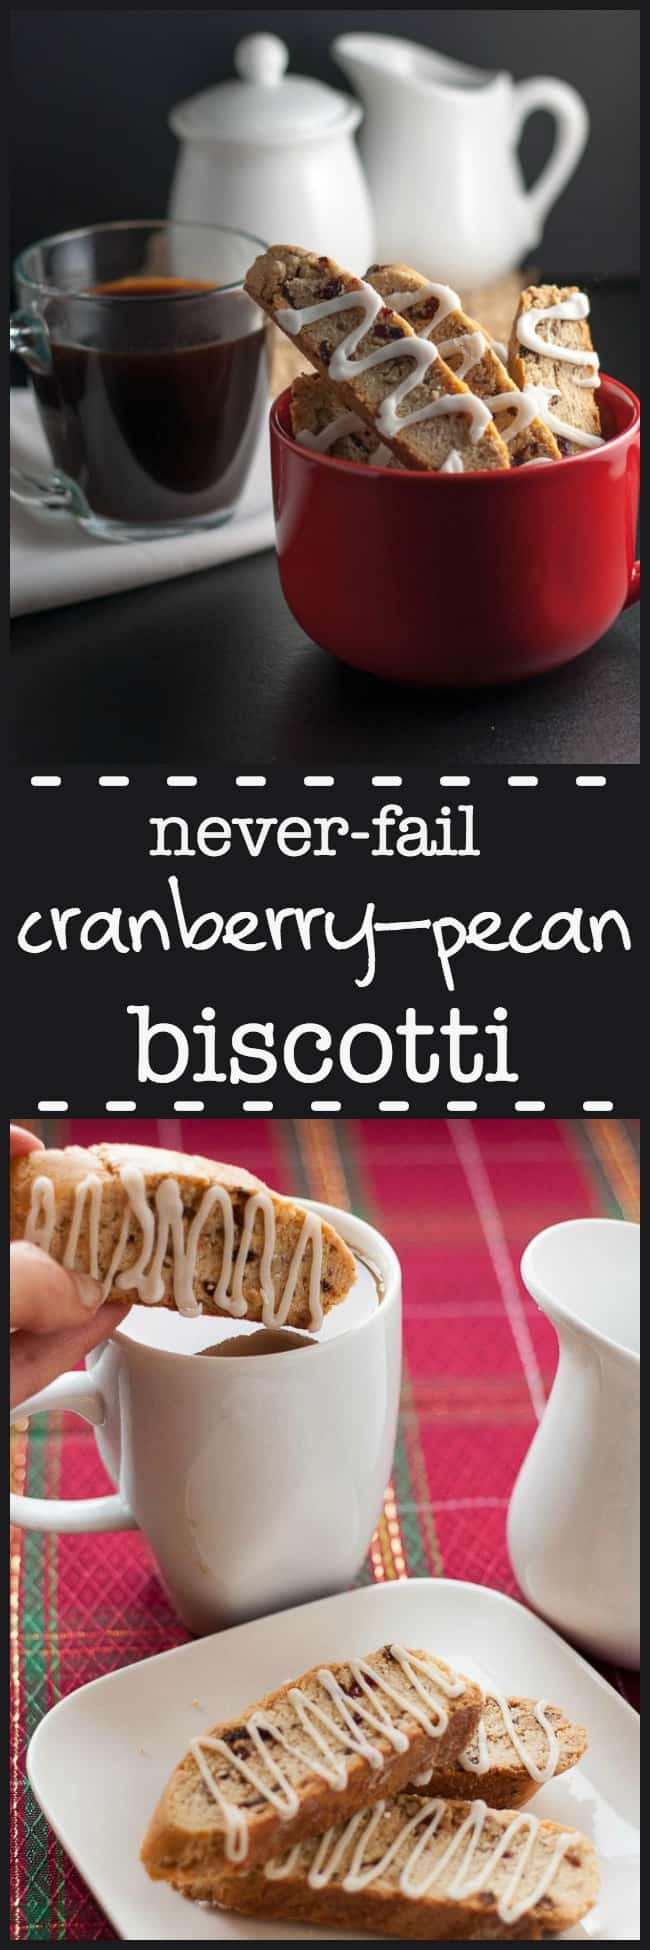 Never-fail Cranberry Pecan Biscotti with Lemon Drizzle.